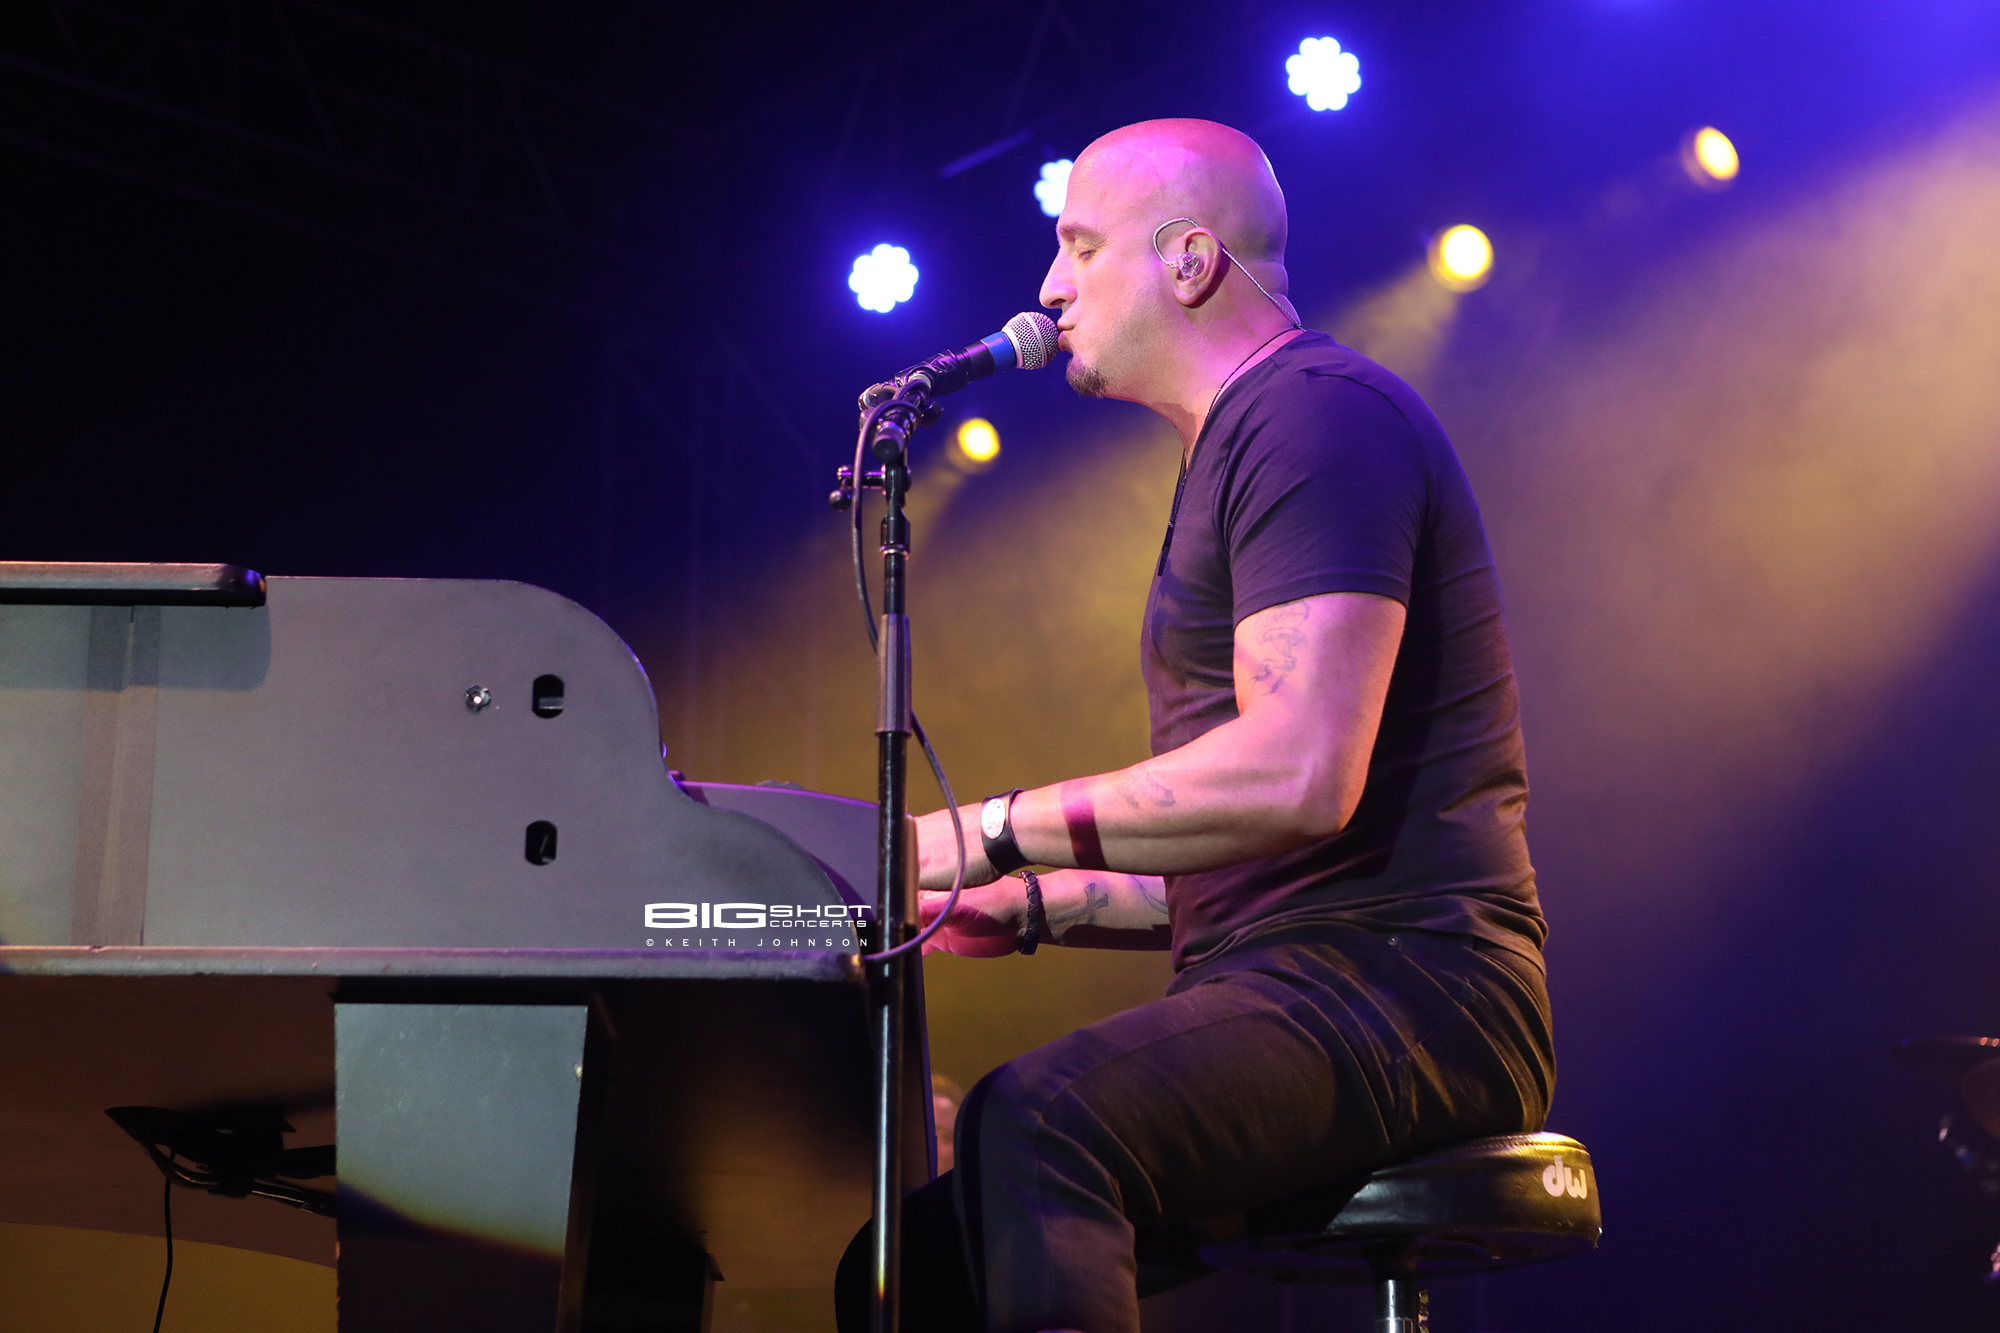 Mike DelGuidice & Big Shot in Concert